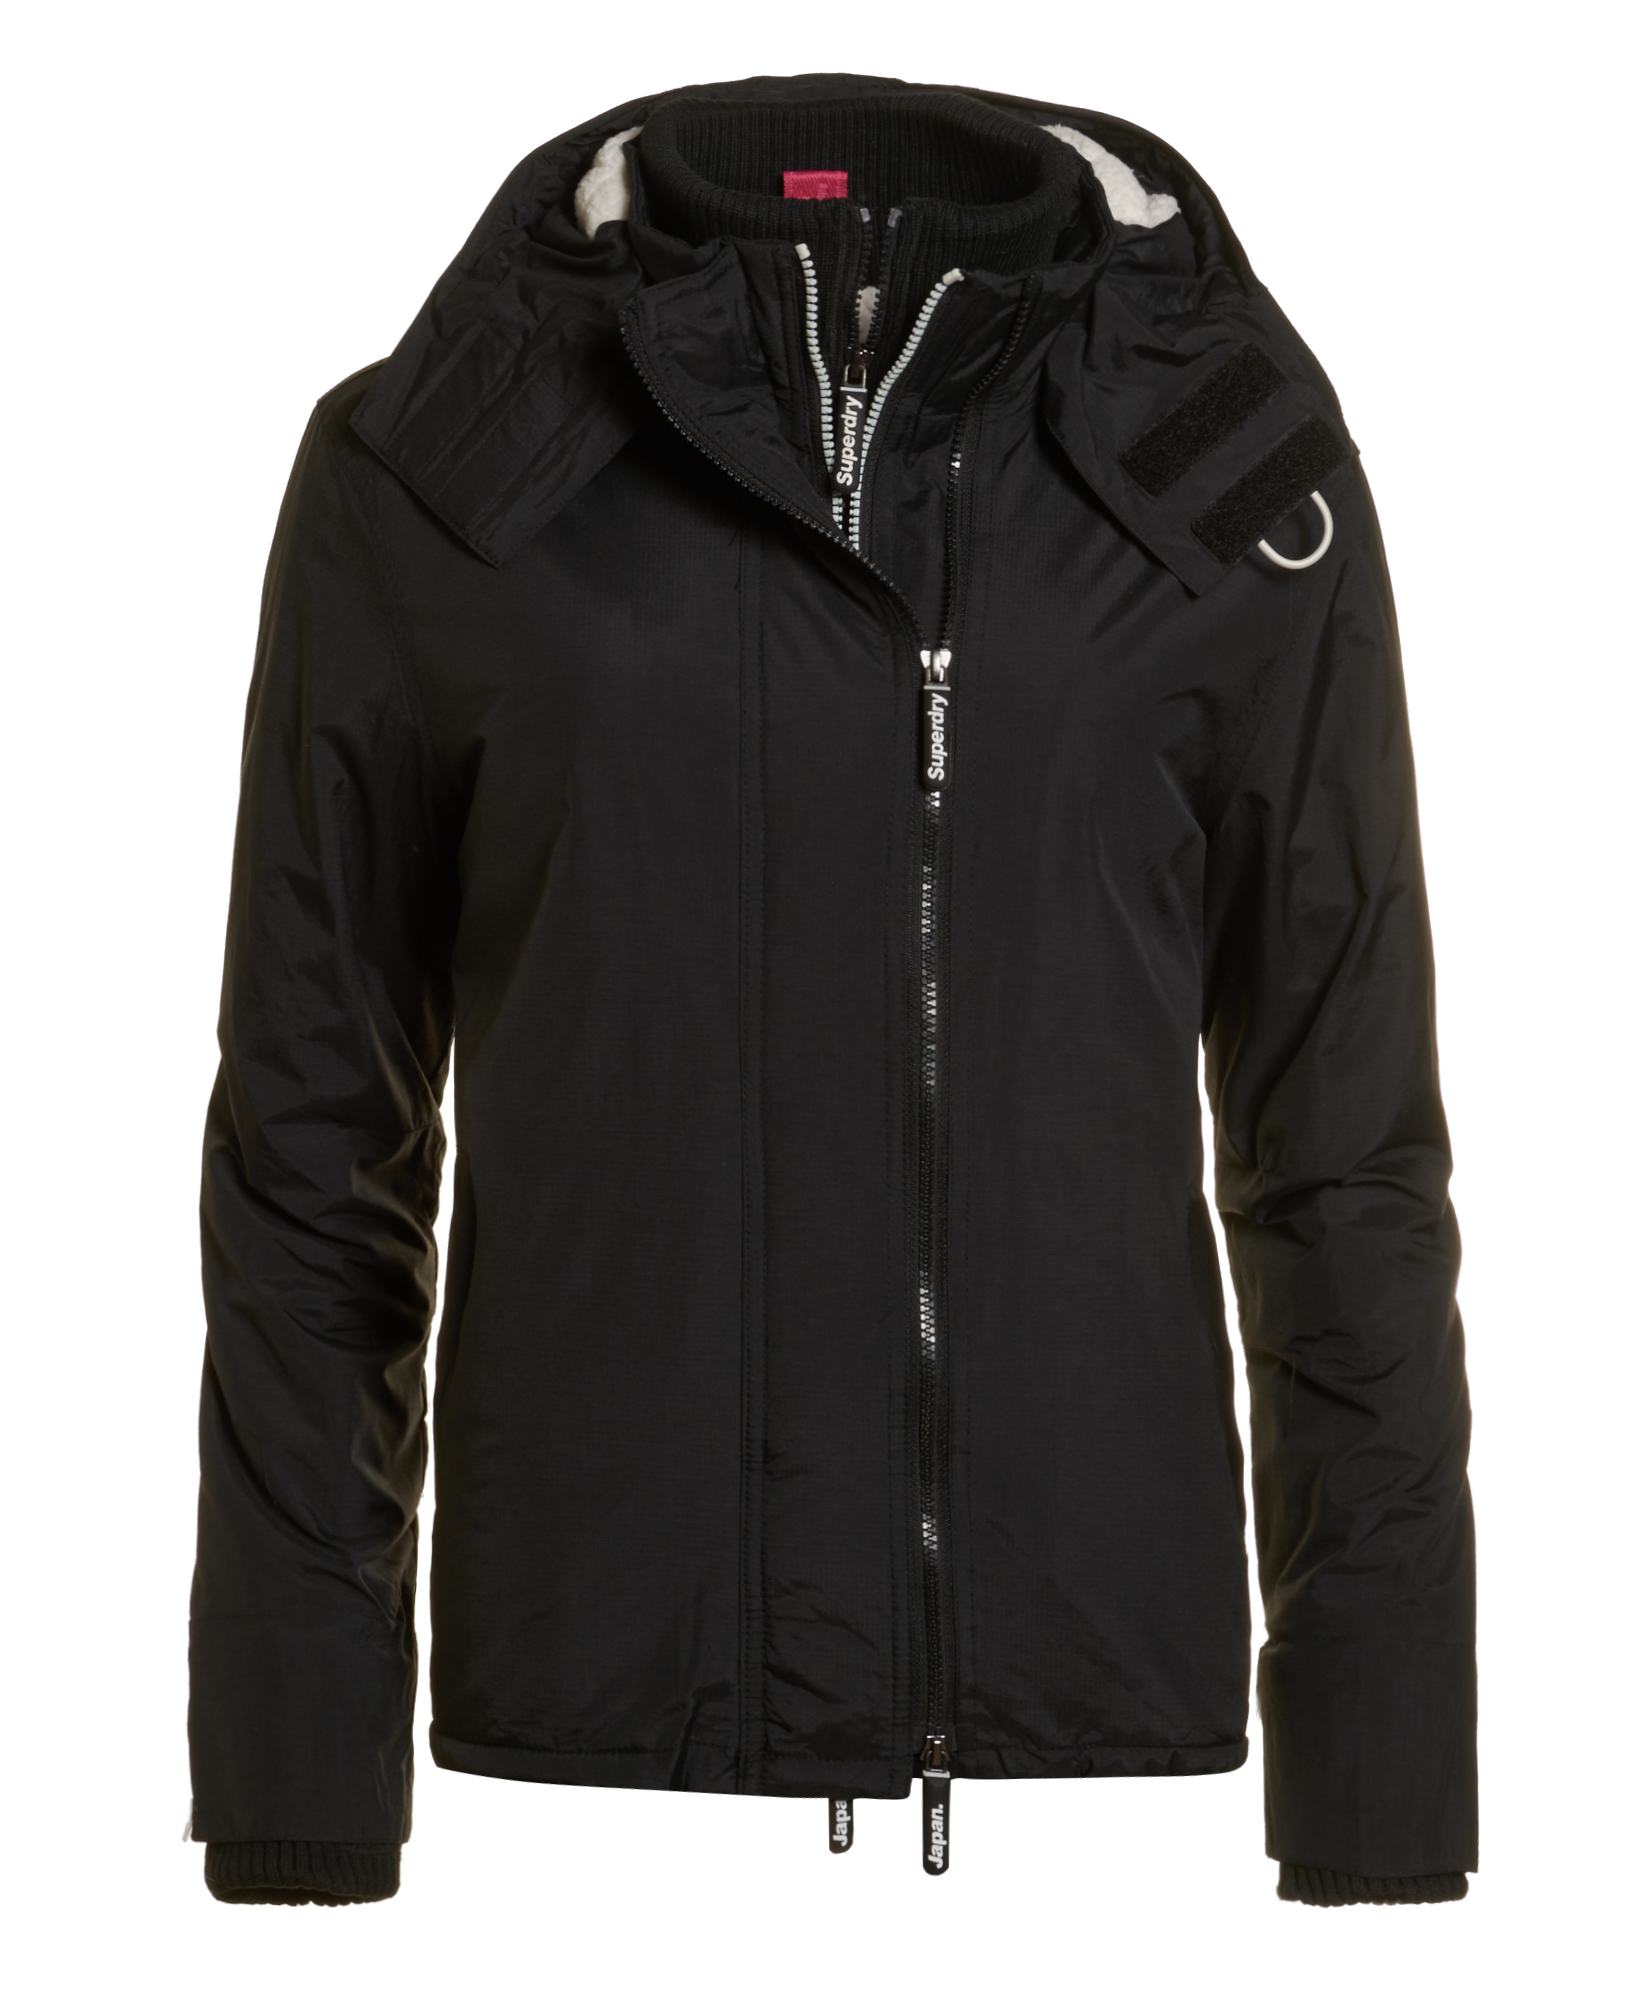 neue damen superdry jacke hooded sherpa windcheater black. Black Bedroom Furniture Sets. Home Design Ideas